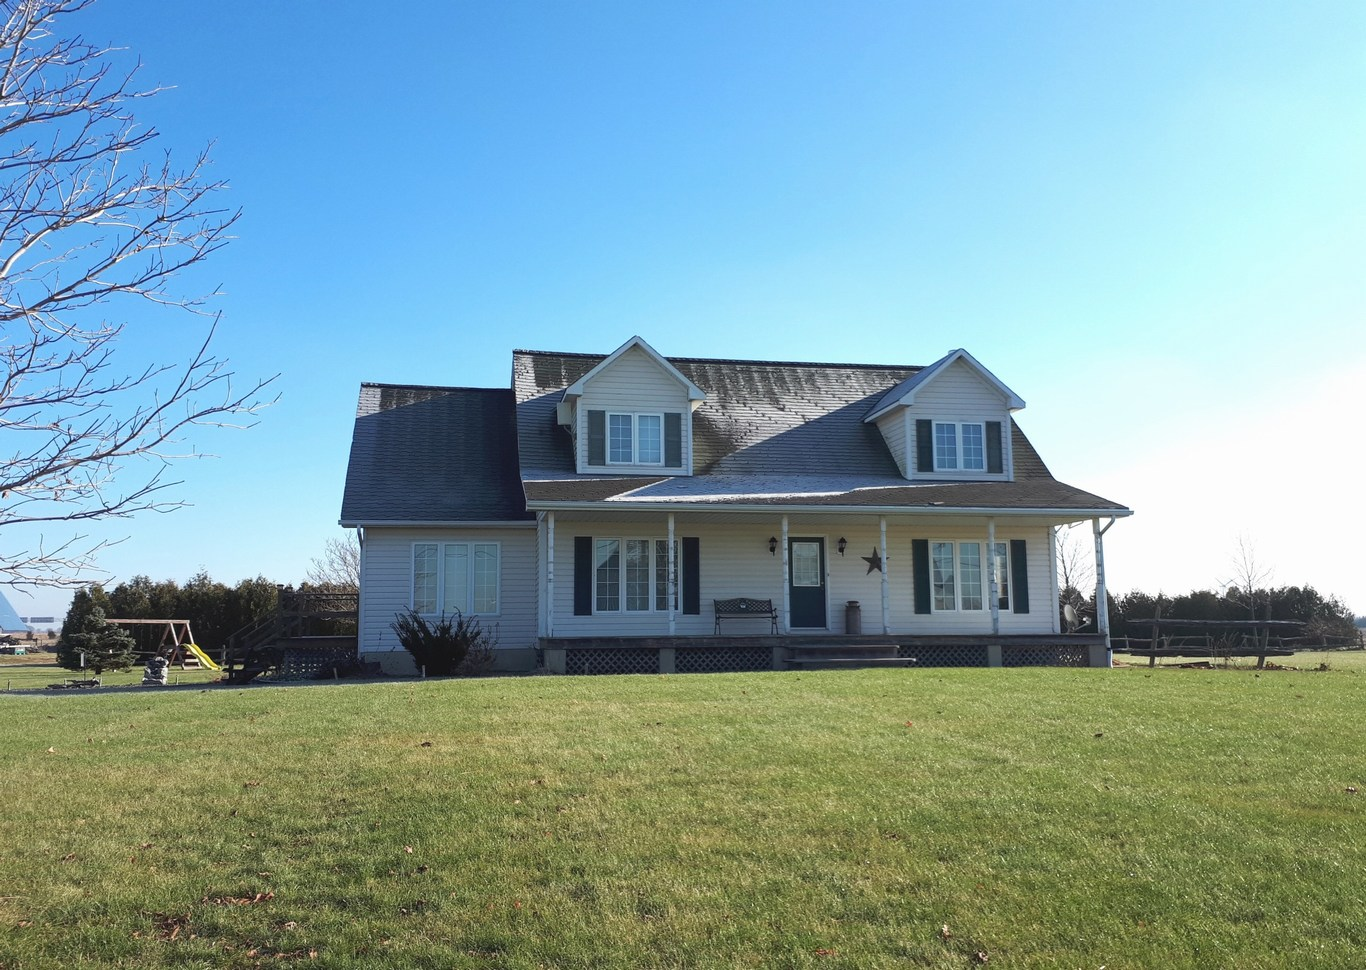 1920 COUNTY RD 31 – Lakeshore, ON